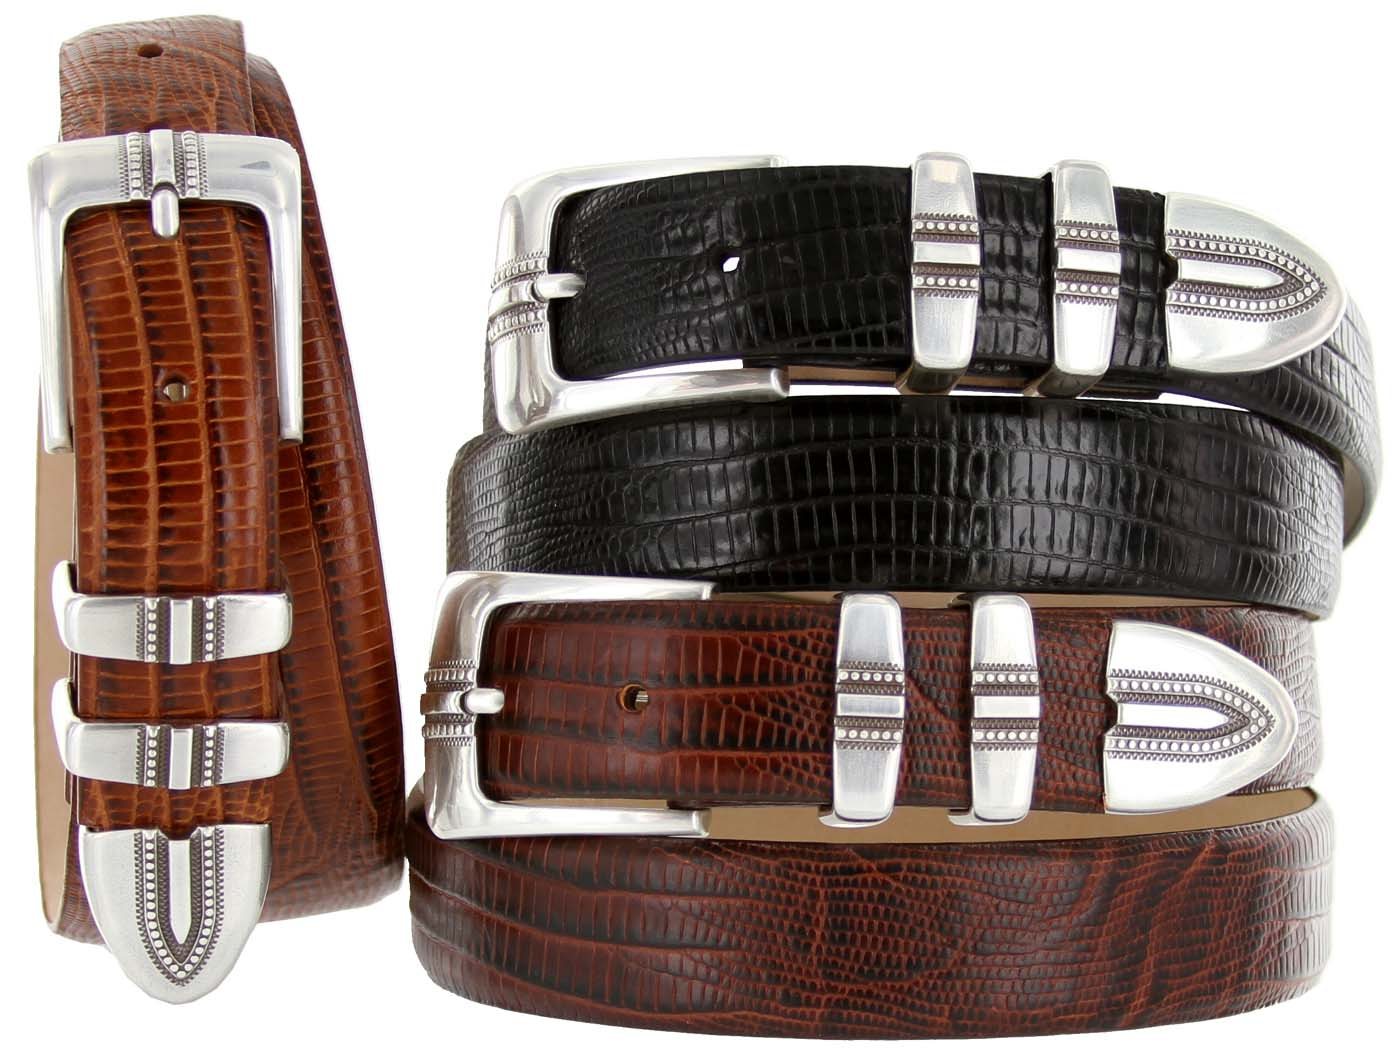 Kaymen Italian Calfskin Leather Designer Dress Golf Belts for Men 1-1 8